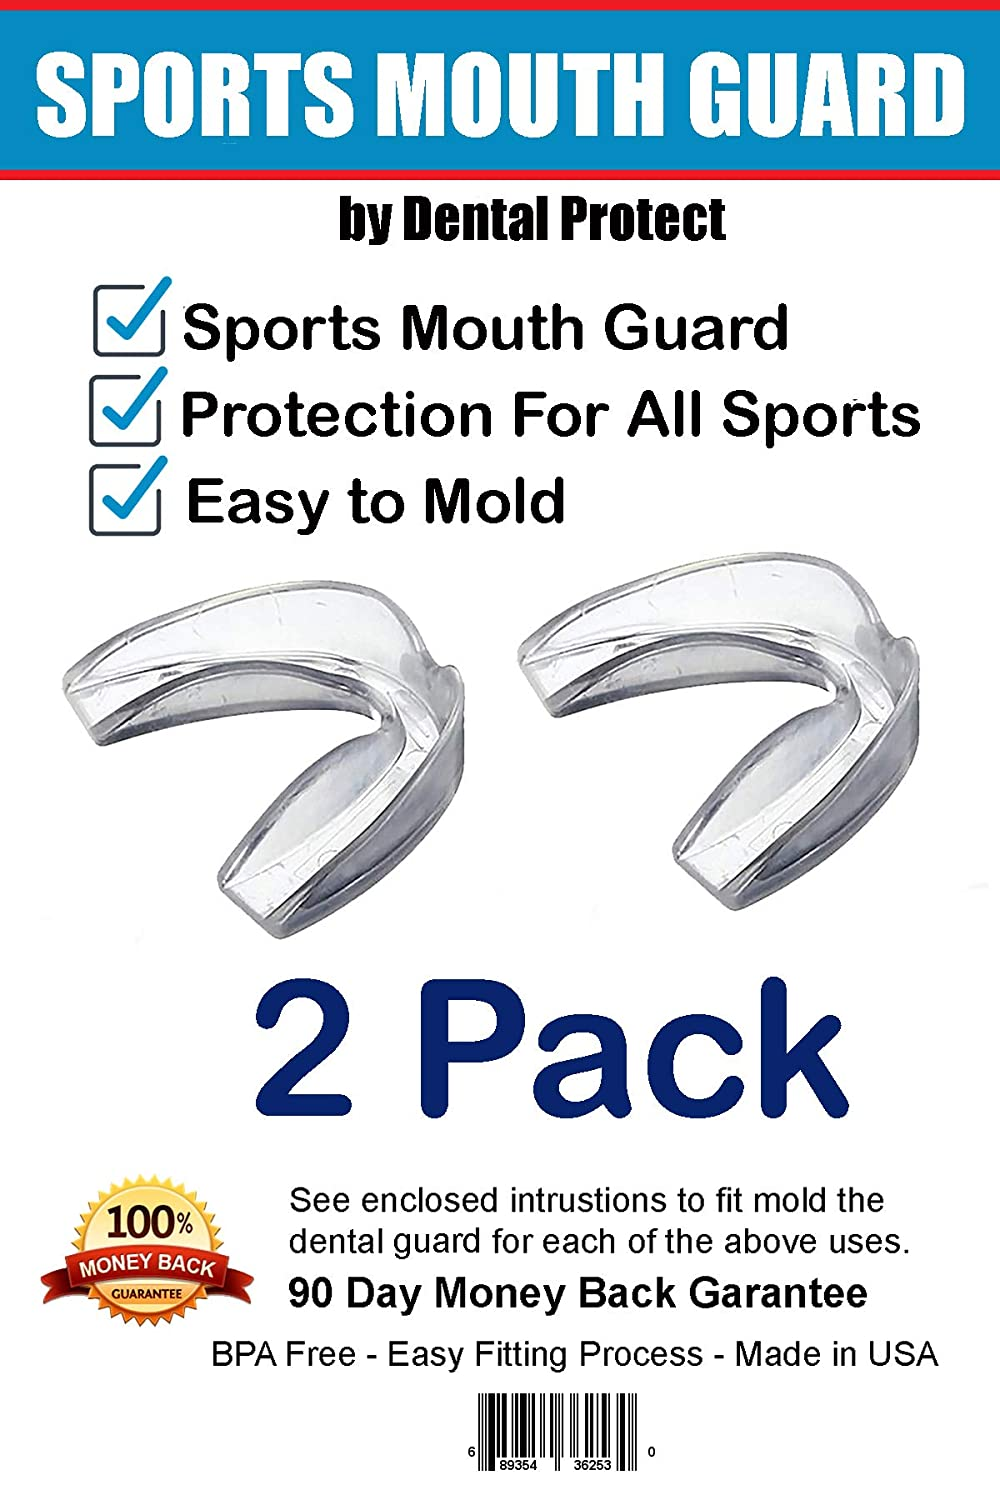 Fits Any Size Mouth Age 12+ Athletic Teeth Mouth Guards Designed for Maximum Protection No BPA Soft Material 2 Pack Made in USA - Customization for Comfort Sports Mouth Guards from